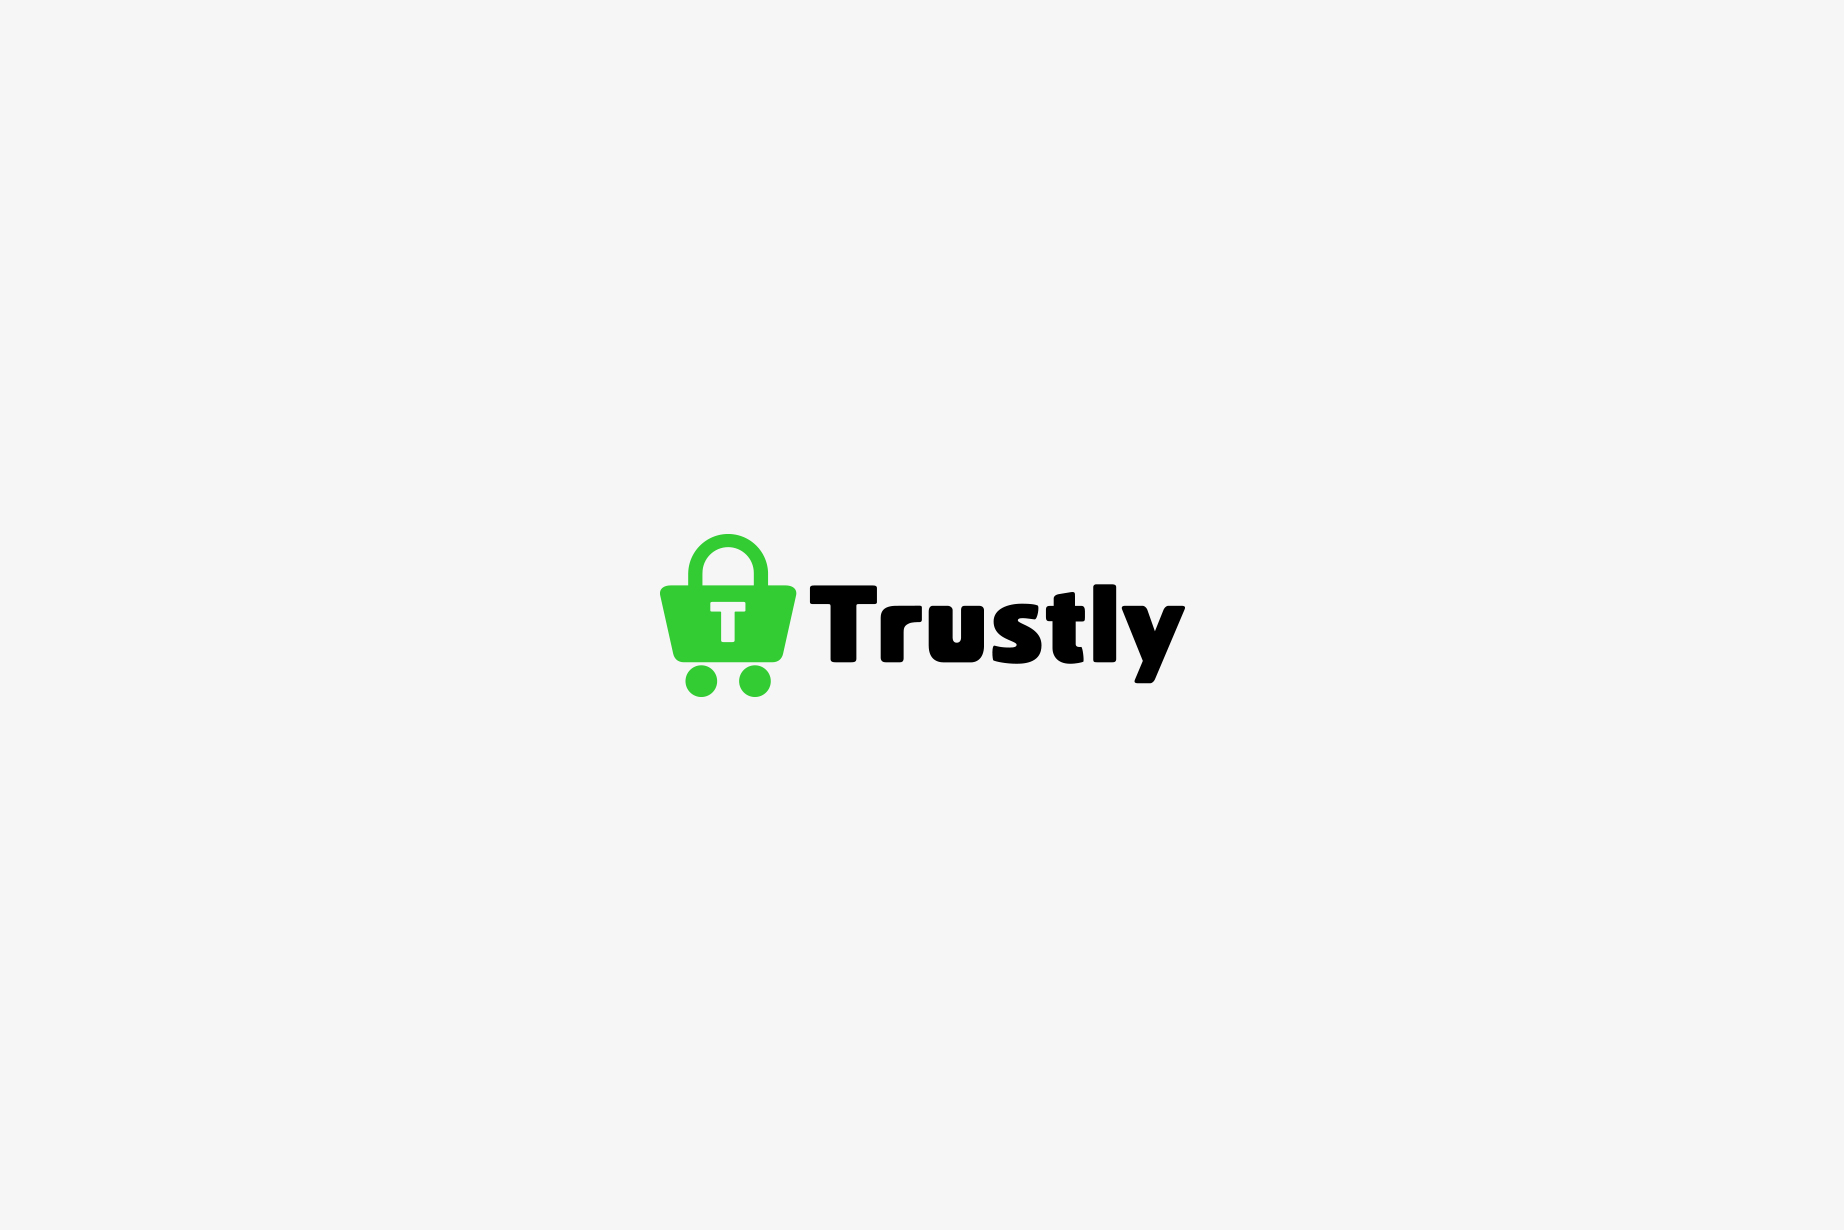 Trustly Press - Trustly logo